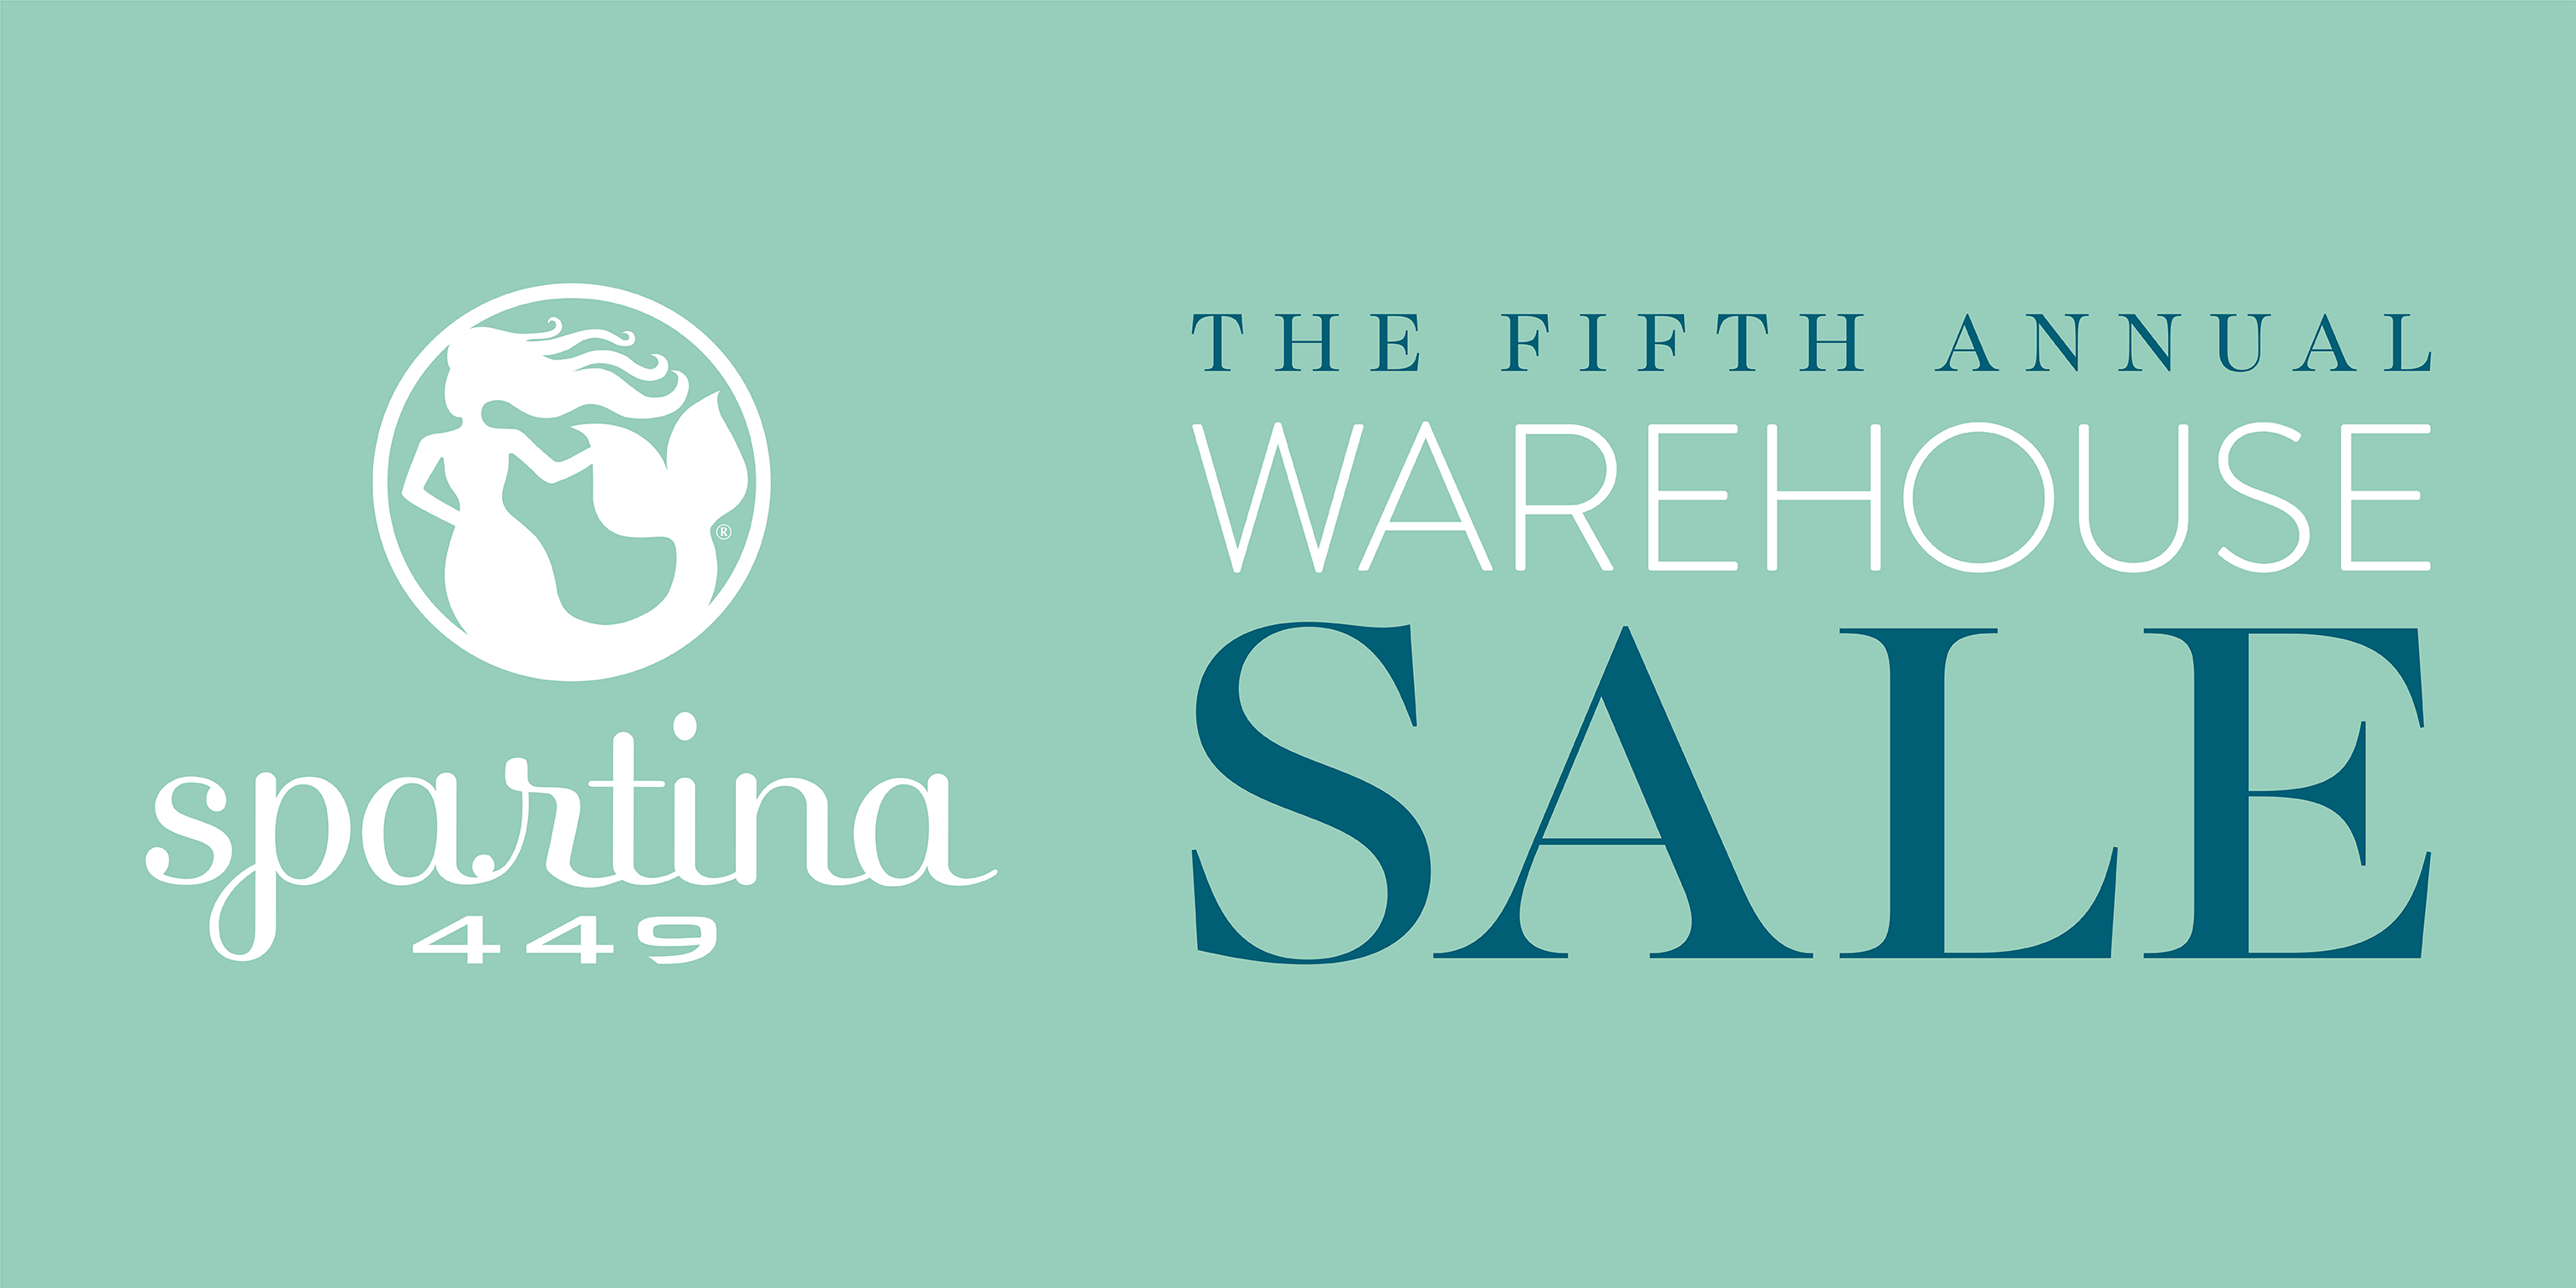 Spartina 449 5th Annual Warehouse Sale